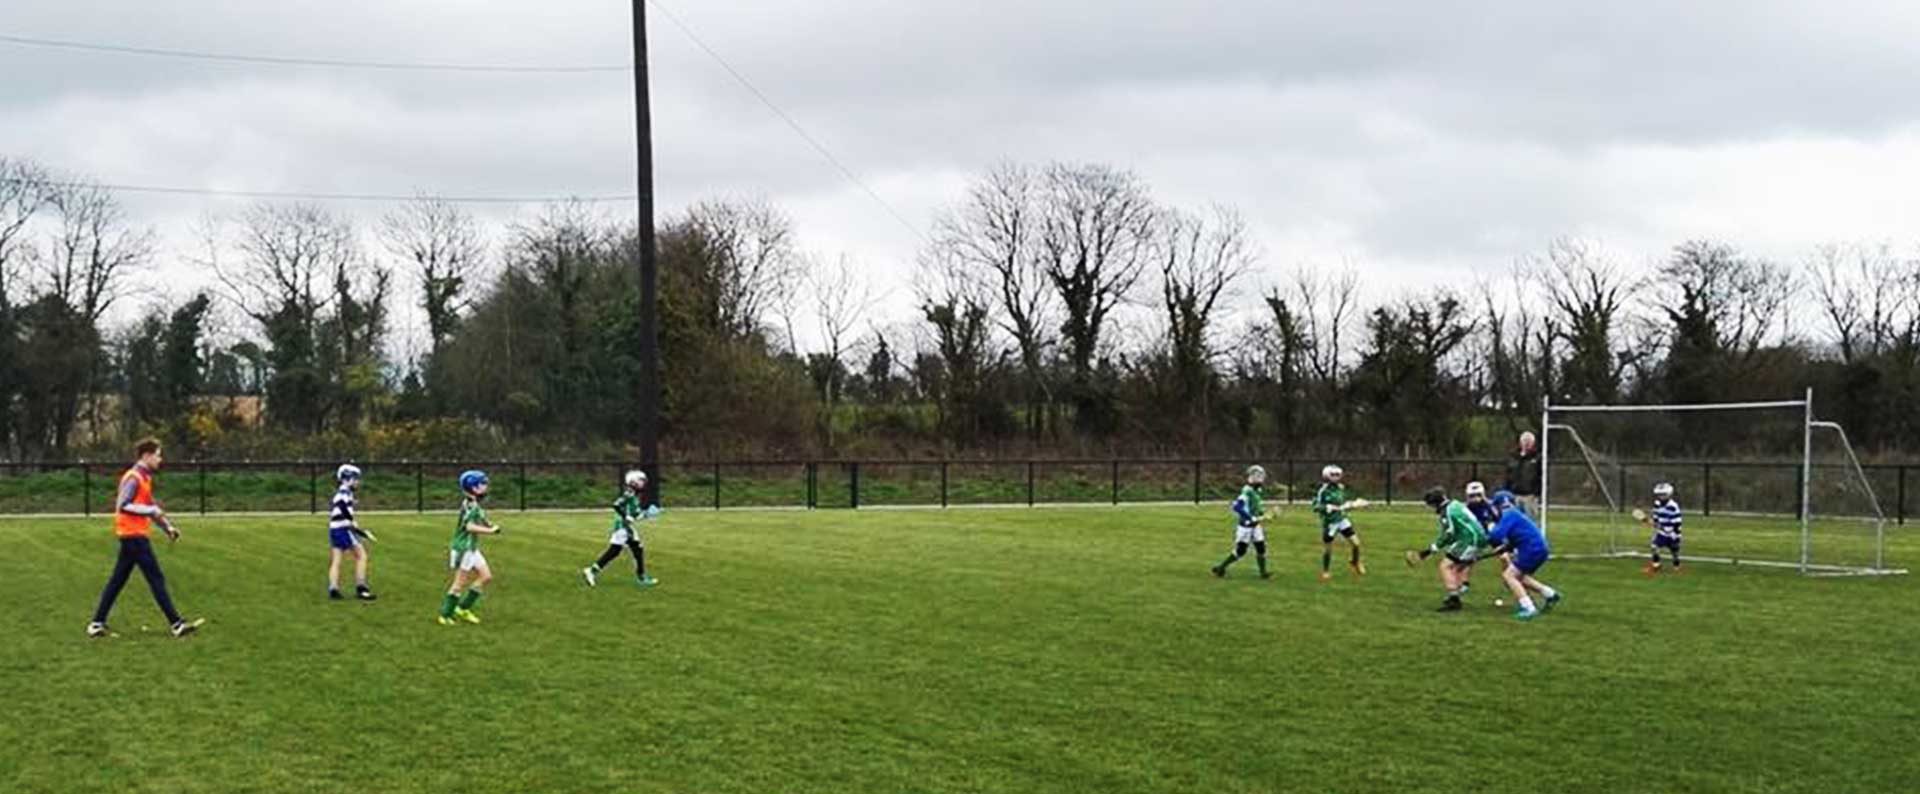 Ashbourne GAA, Meath